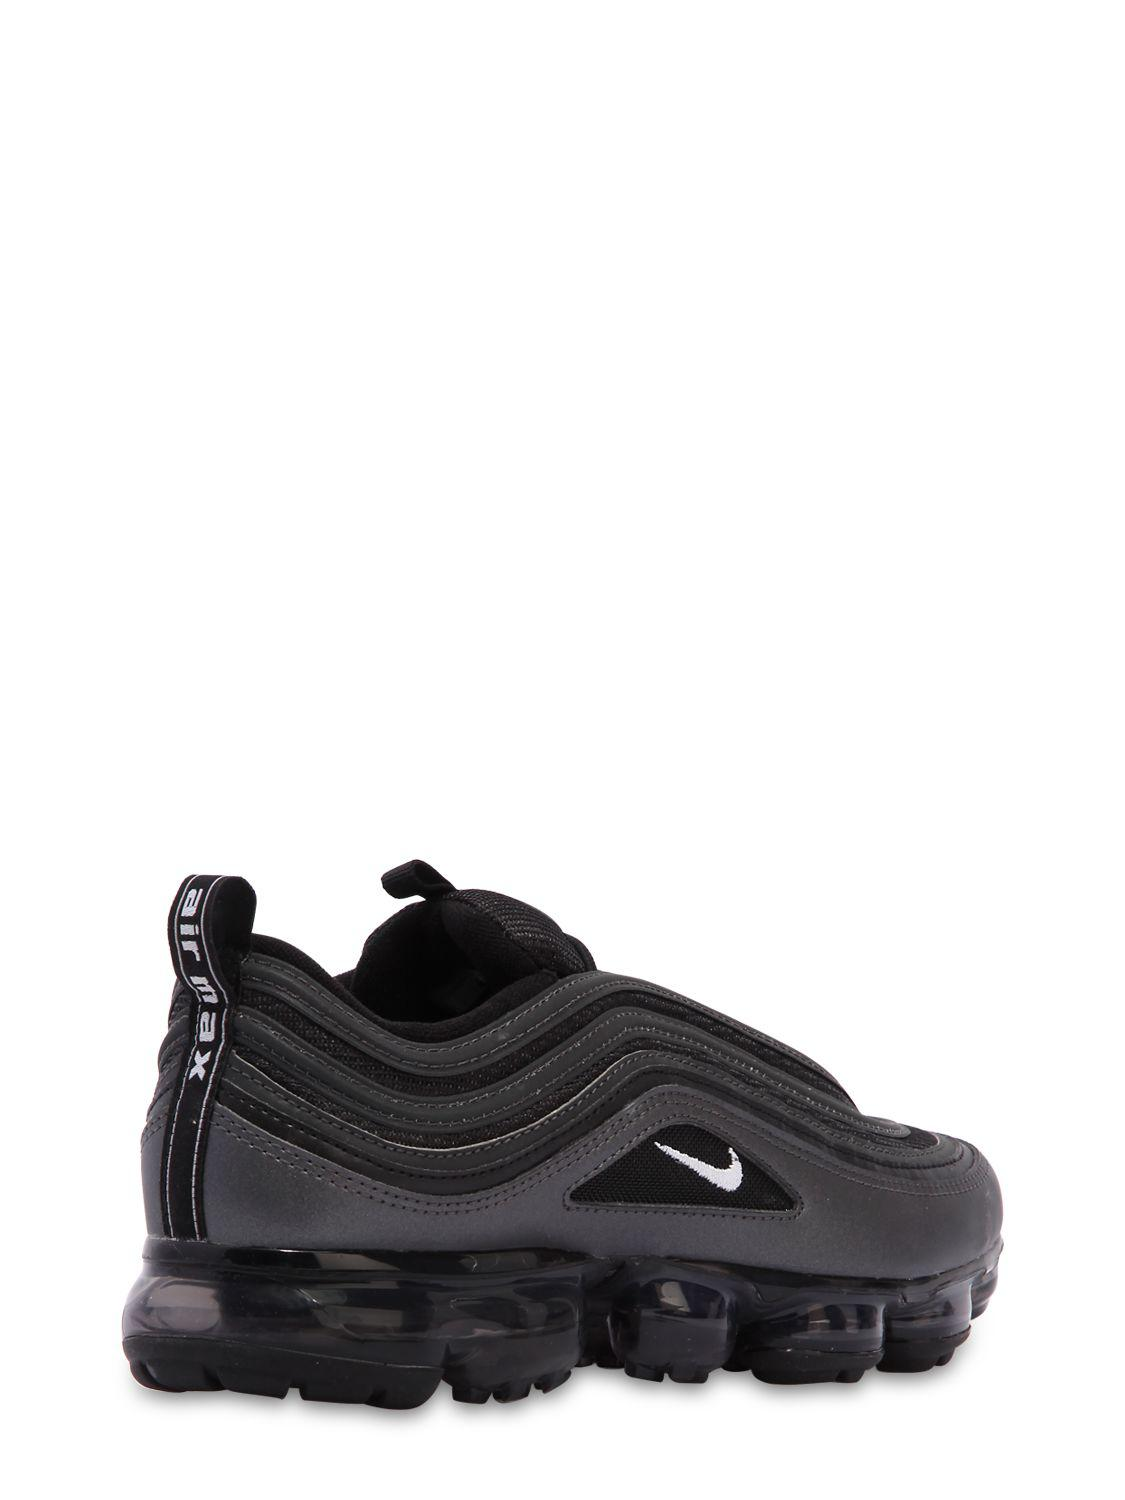 Nike Leather Air Vapormax 97 Sneakers in Black for Men - Lyst